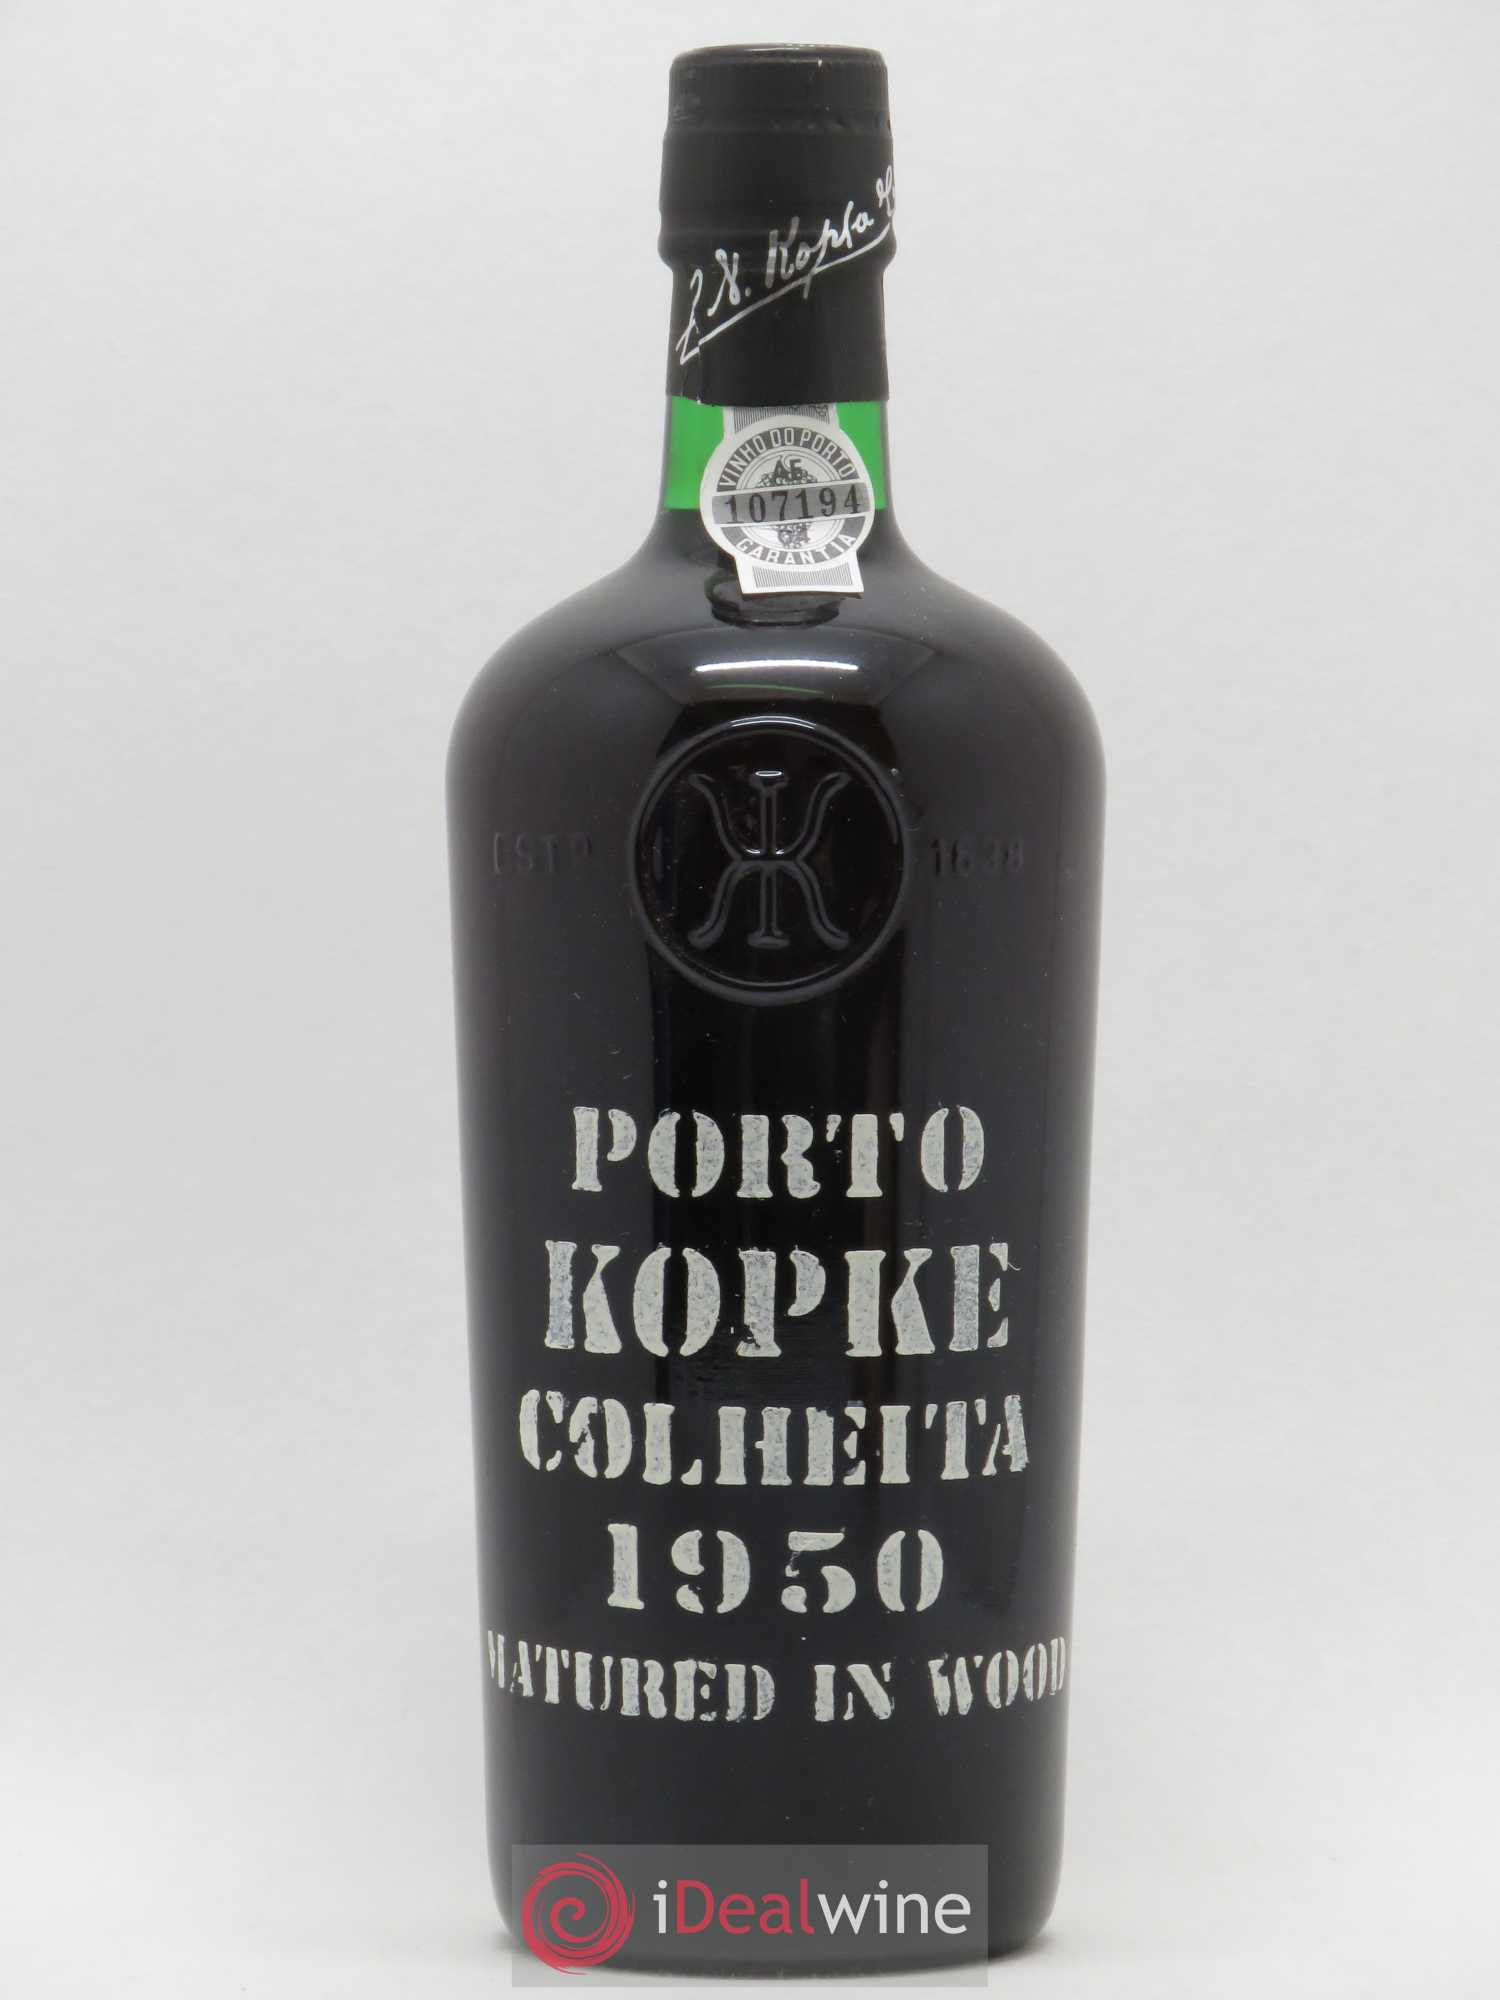 Porto Kopke Colheita Port 1950 - Lot of 1 Bottle